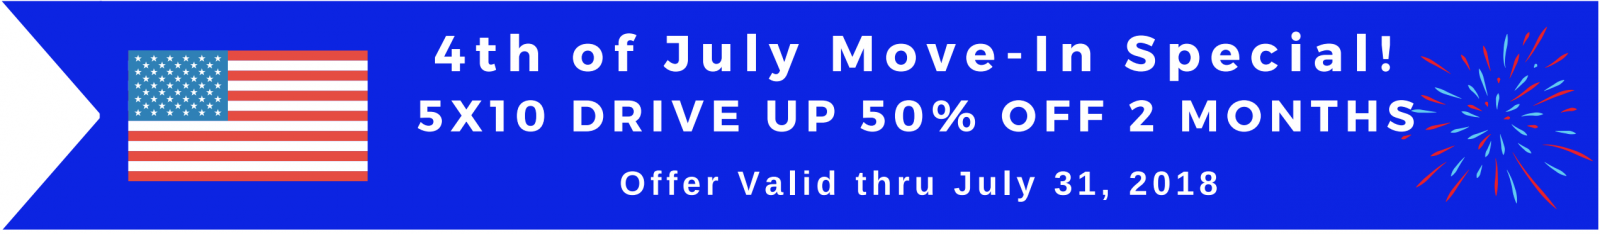 5x10 Drive up Units 50% off for 2 months